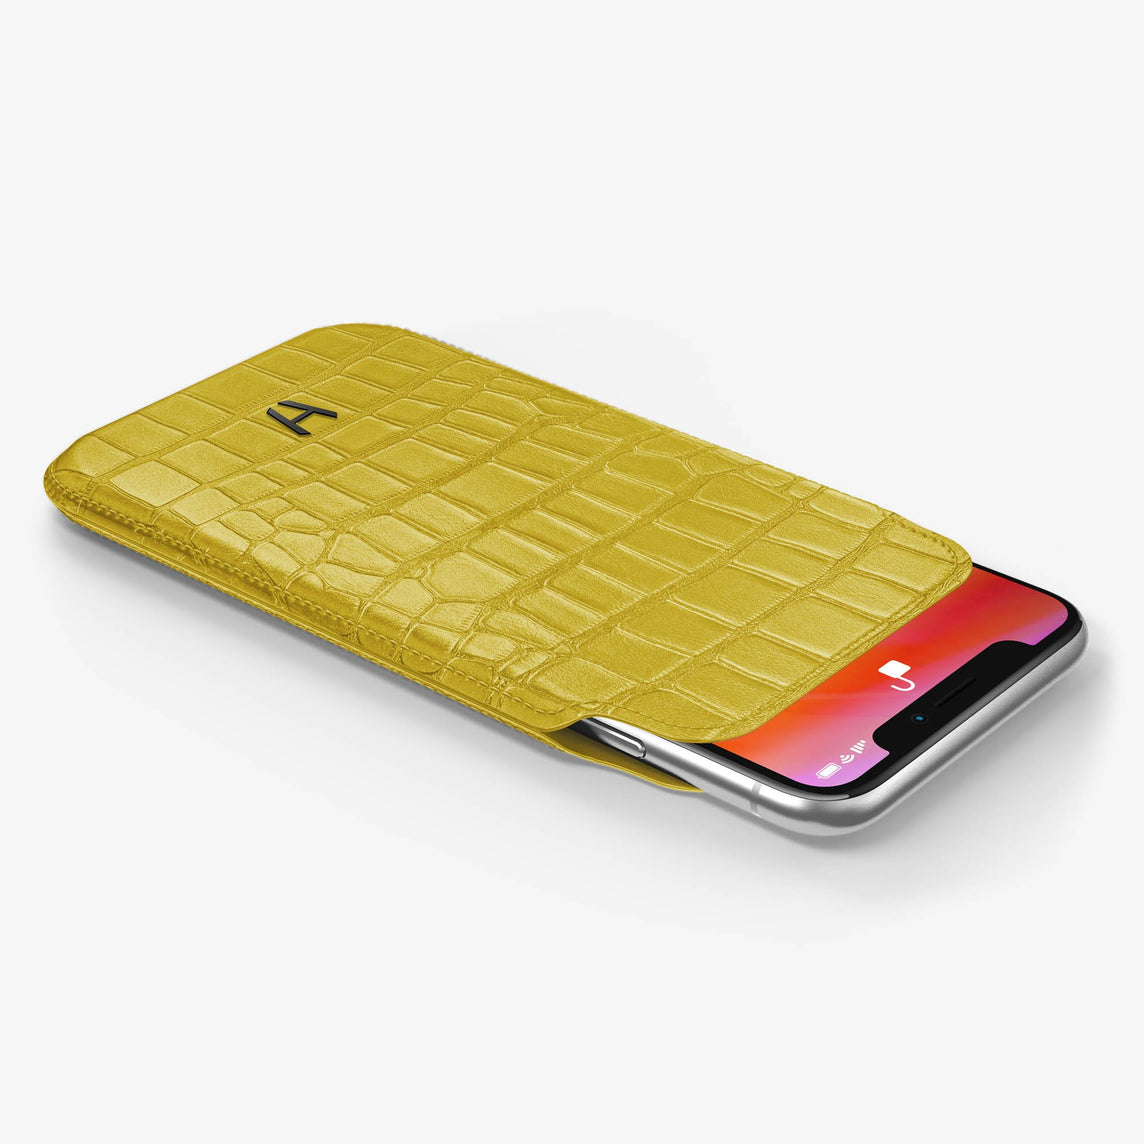 Alligator [iPhone Sleeve Case] [model:iphone-xsmax-case] [colour:yellow] [finishing:black]